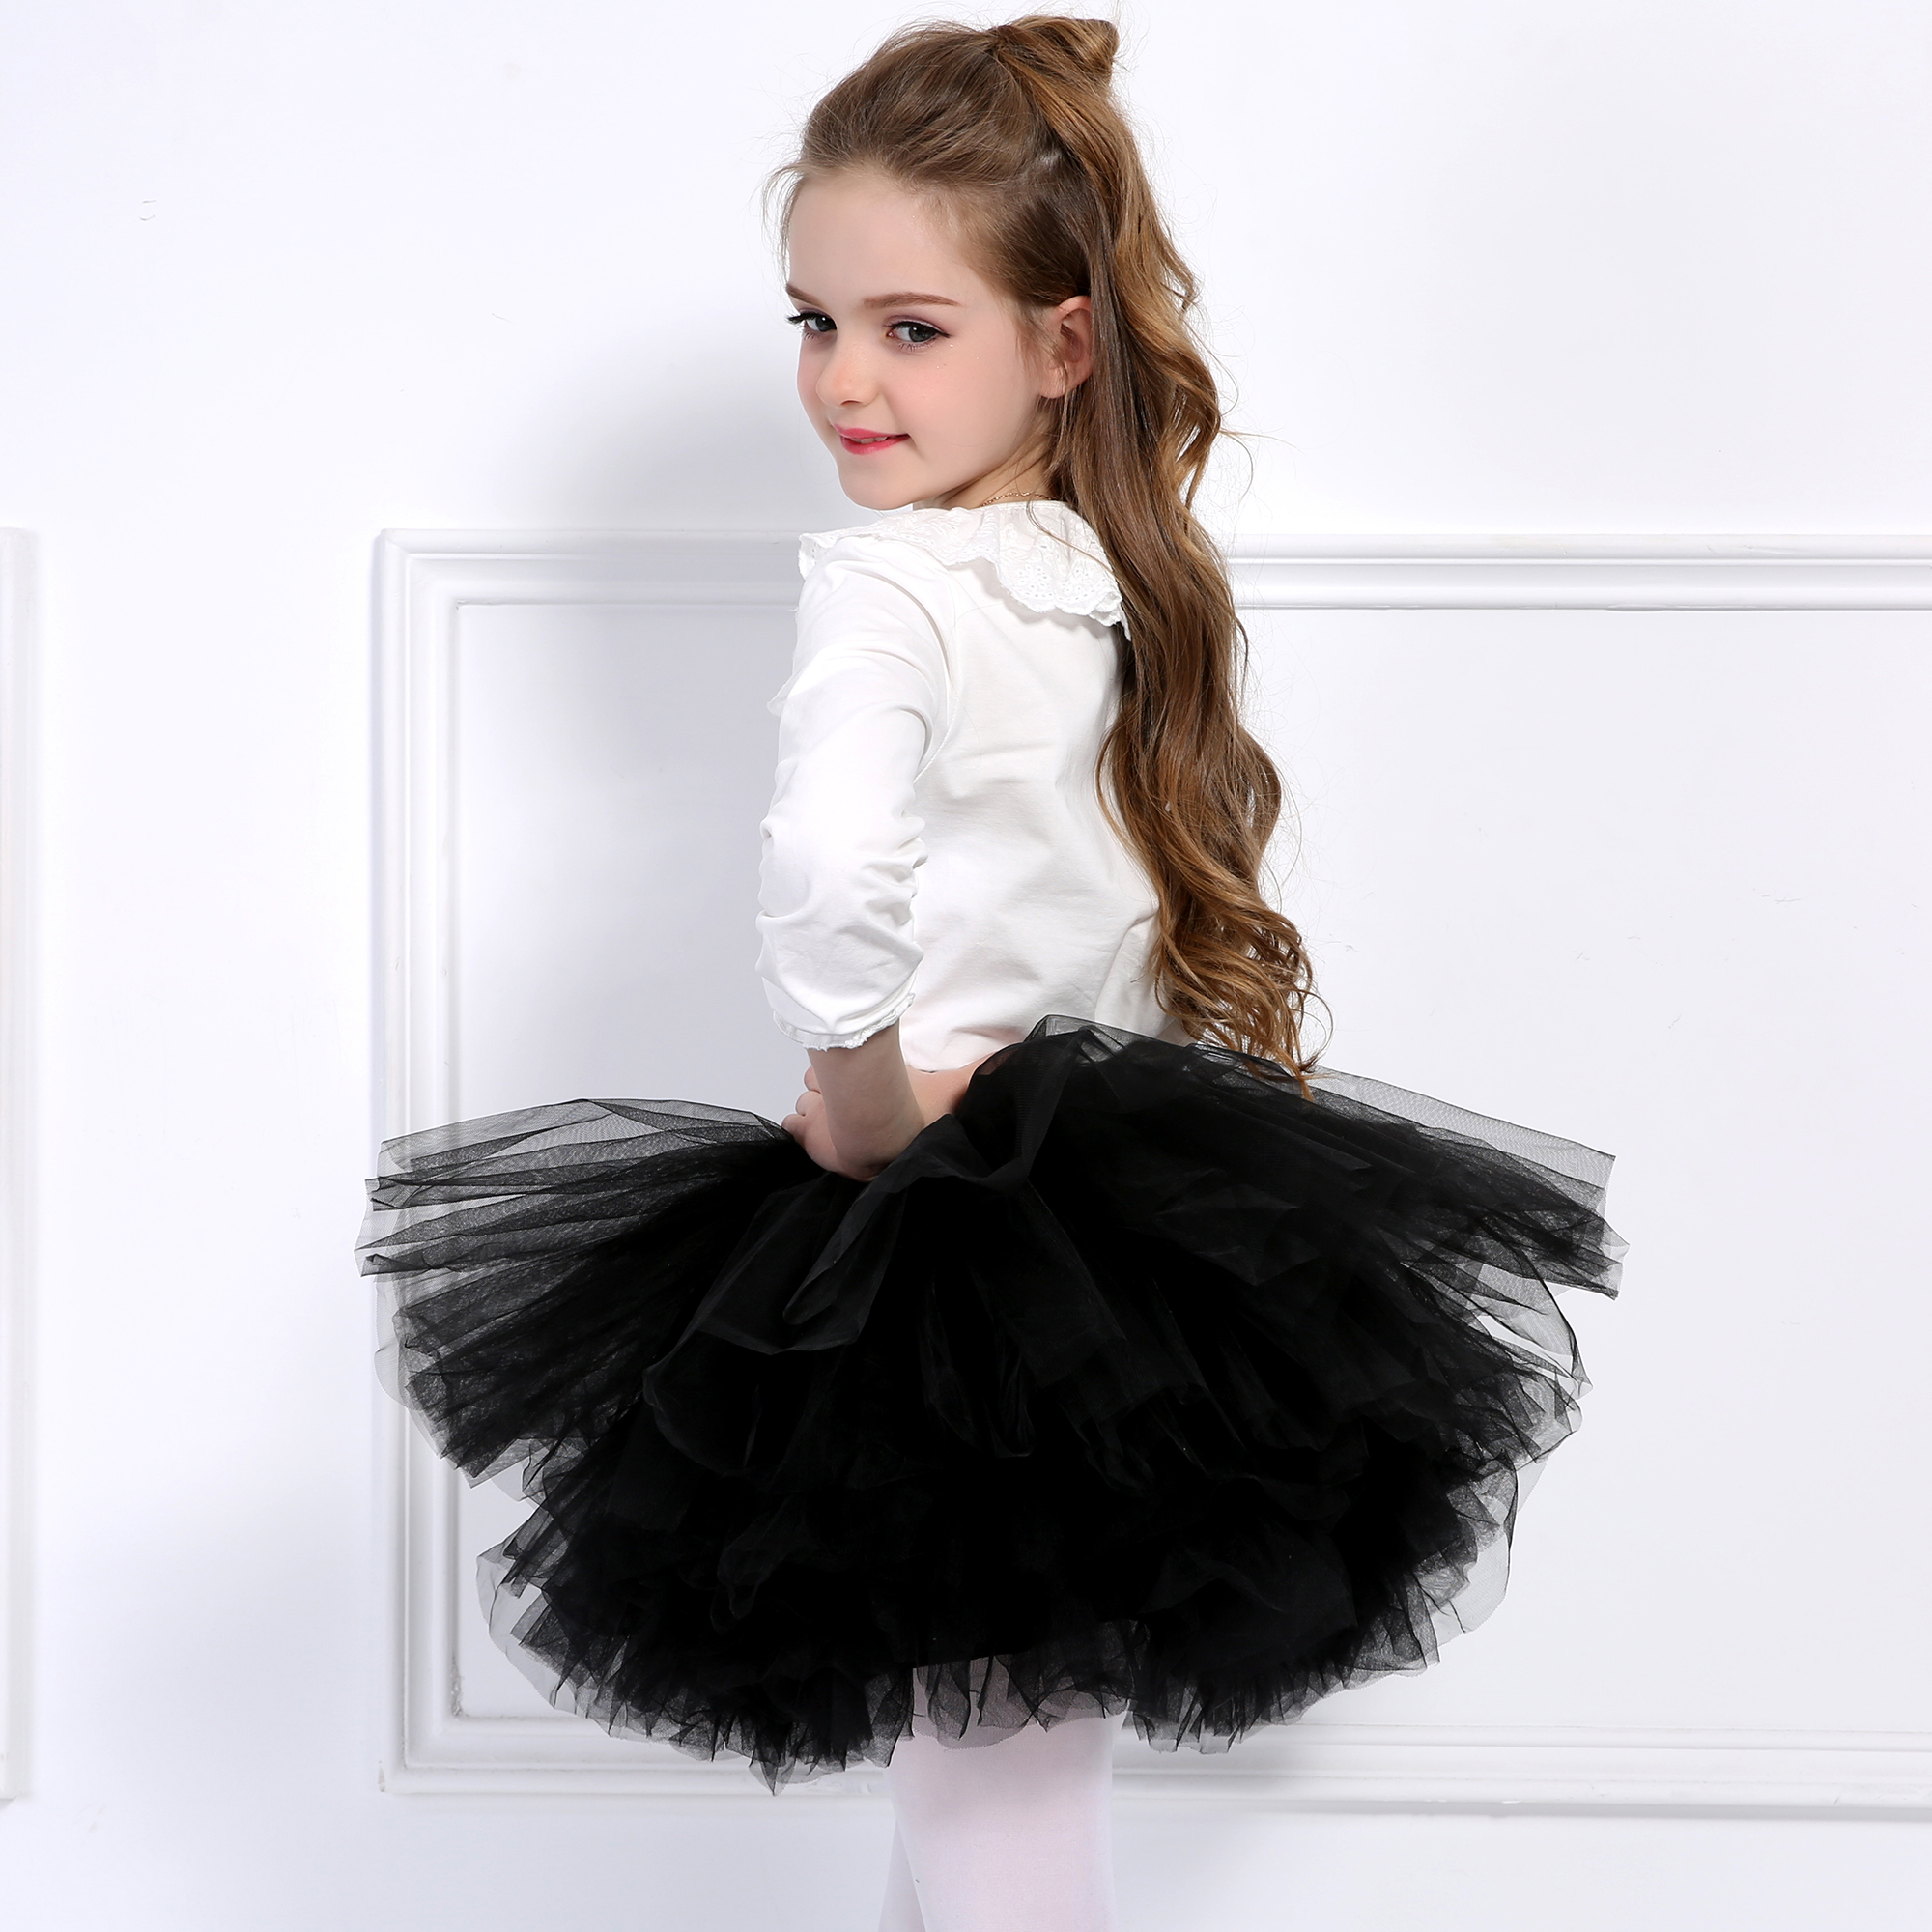 6 Layers Extra Fluffy Baby Girls Pettiskirt Party Tutu Skirt Children Tulle Kids Petticoat Dance Ballet Skirt Costume Princess